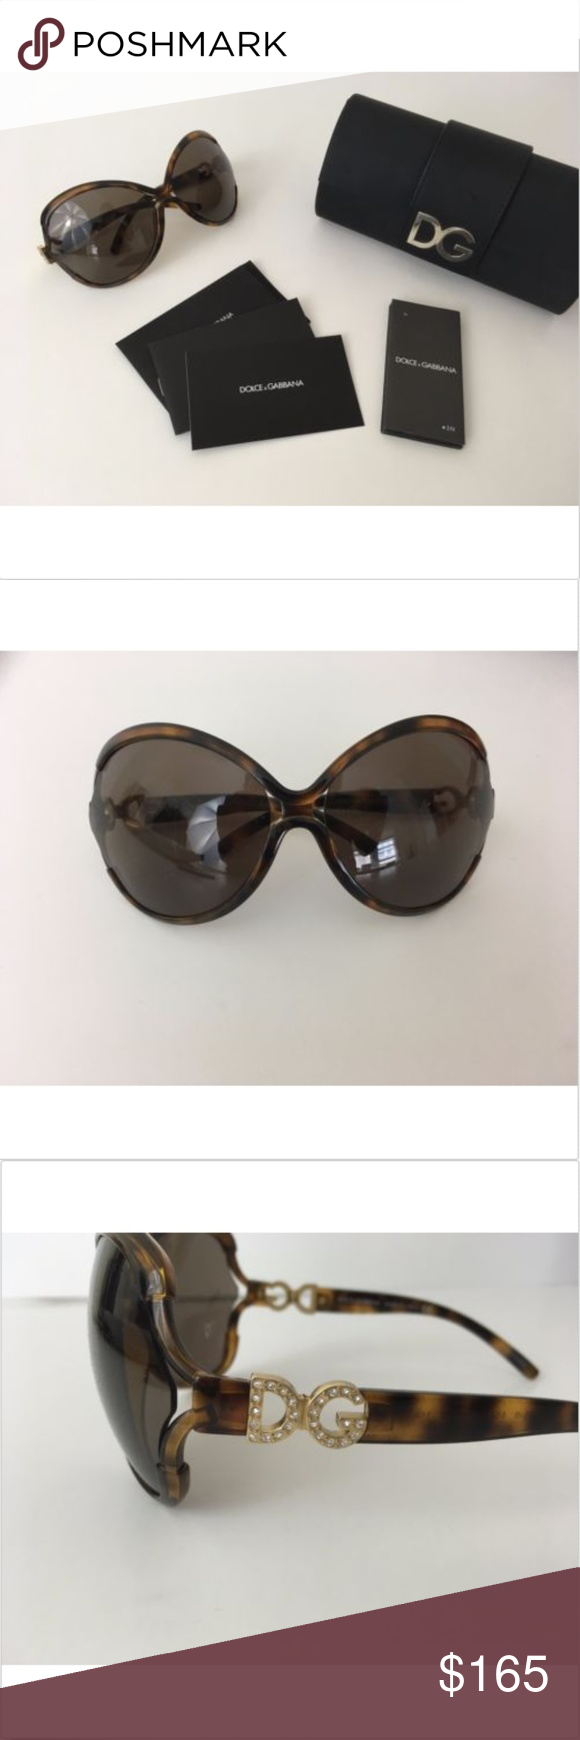 8d8780a48f28 PRICE DRP $165 Dolce Gabbana Sunglasses Crystal Beautiful Dolce & Gabbana  sunglasses Features crystal DG logo on temples Comes with case and cards.